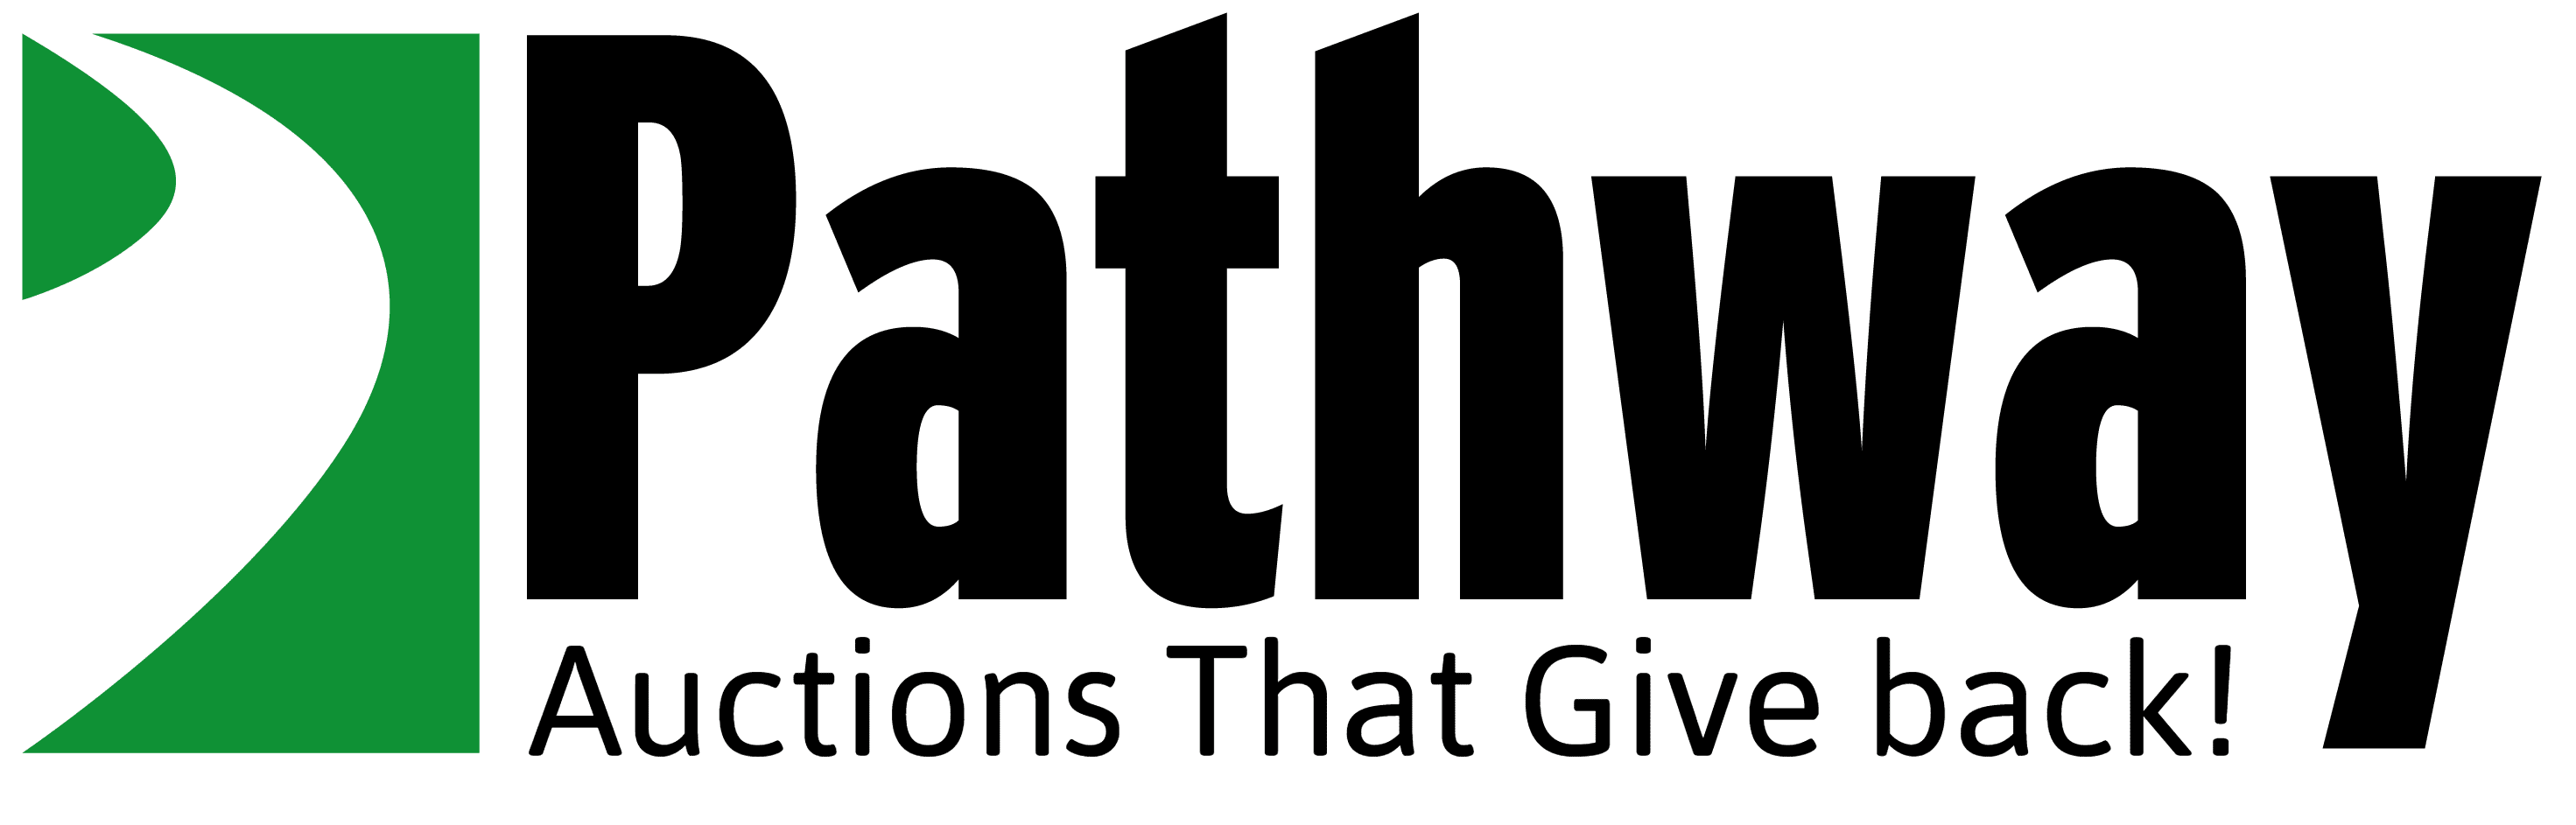 Pathway - Auctions That Give Back